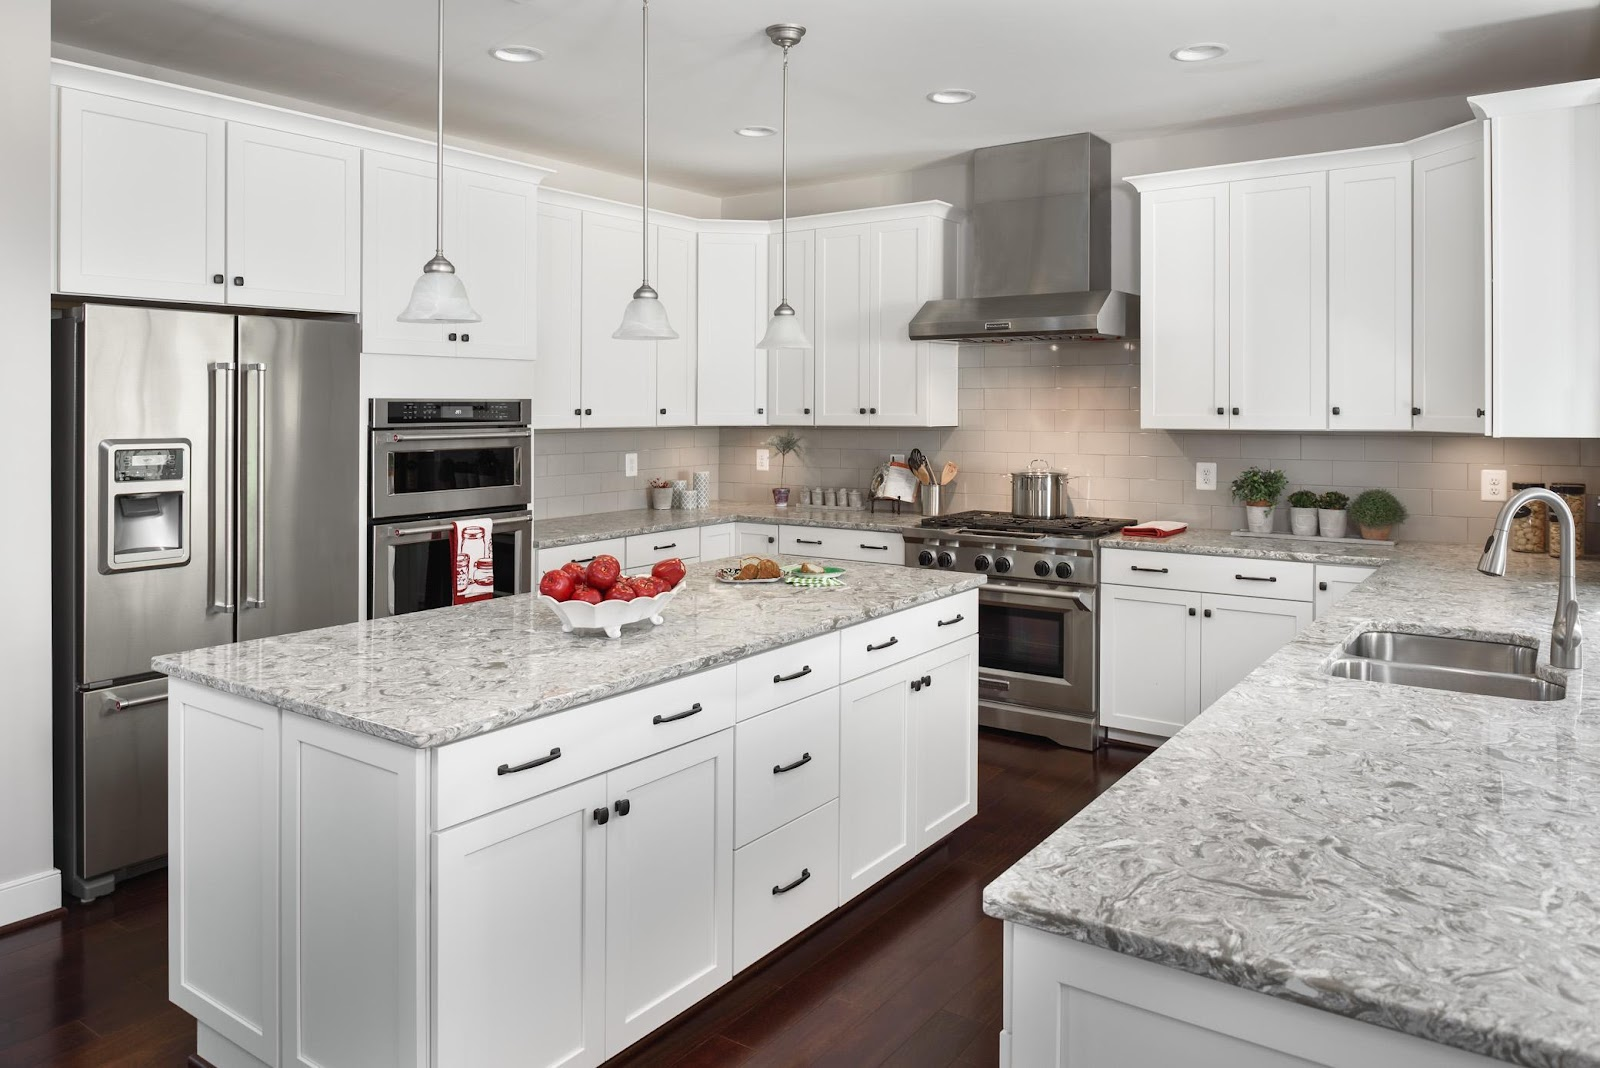 Dirty Kitchen Cabinets Here S How To Keep Them Spotlessly Clean Sponsored State Journal Com